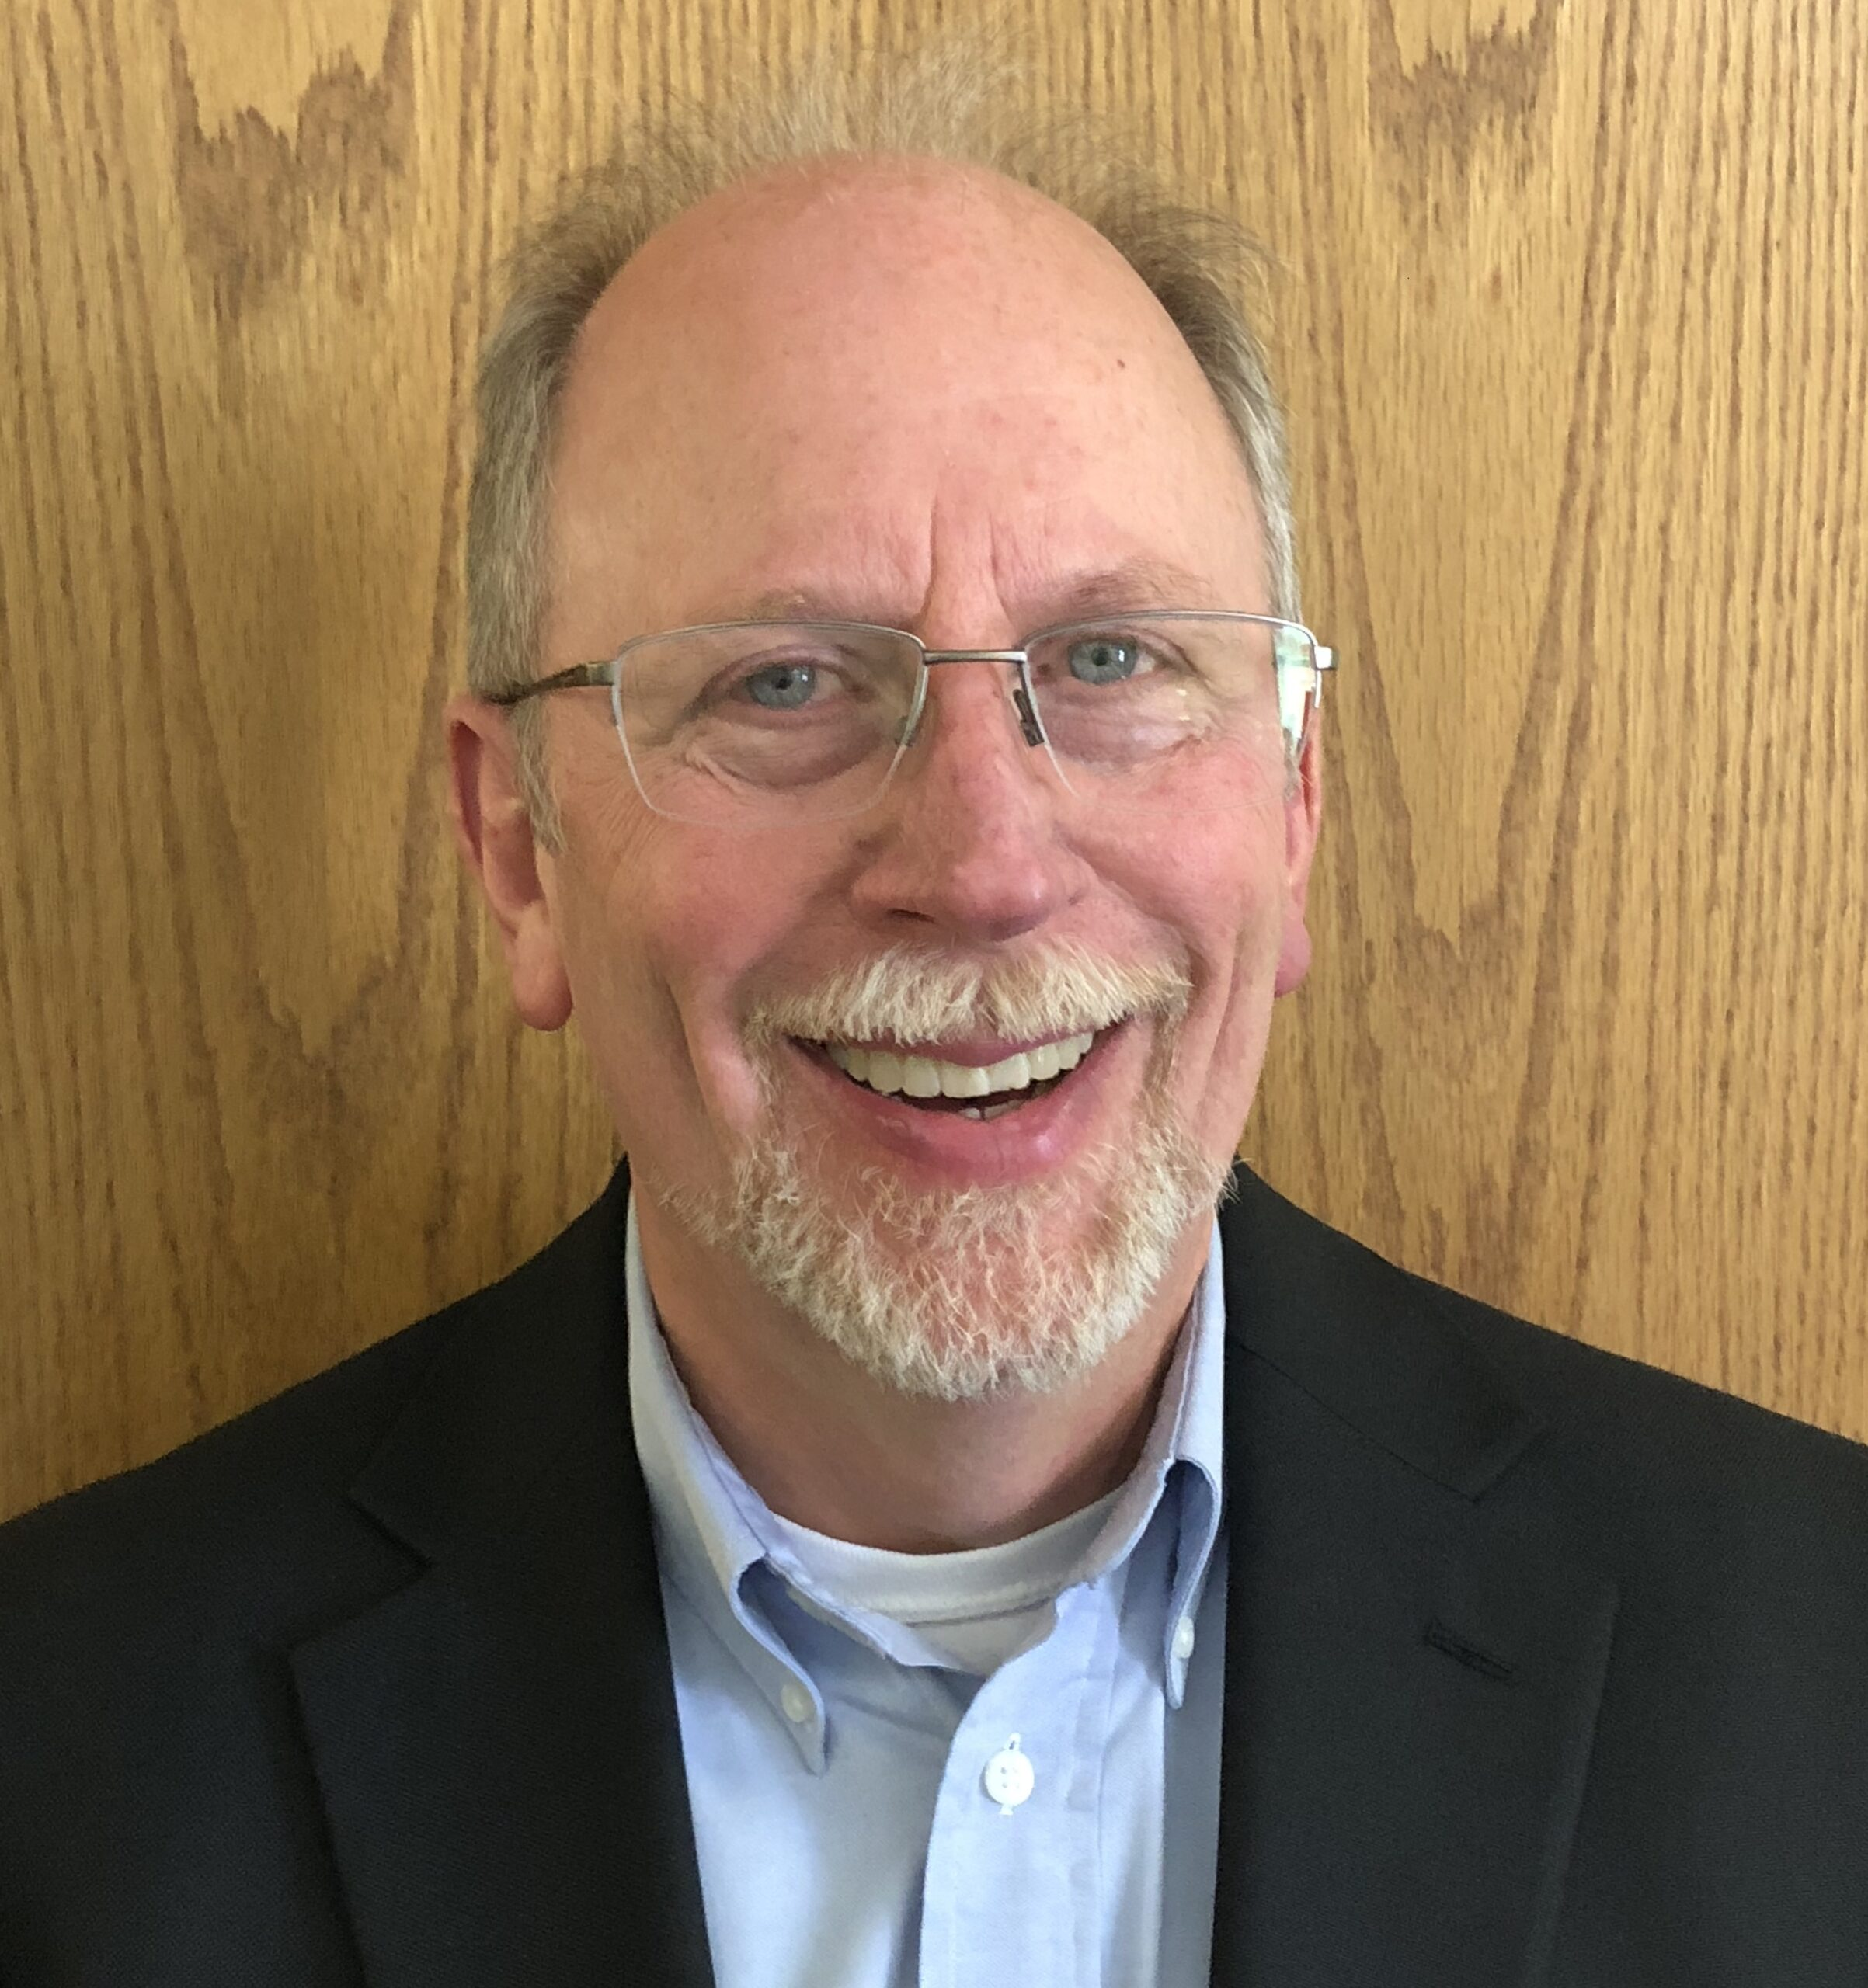 The recently retired executive director of the Voluntary Action Center Nick Foster announced he will run for the Fourth Ward seat on the City of Columbia's city council.